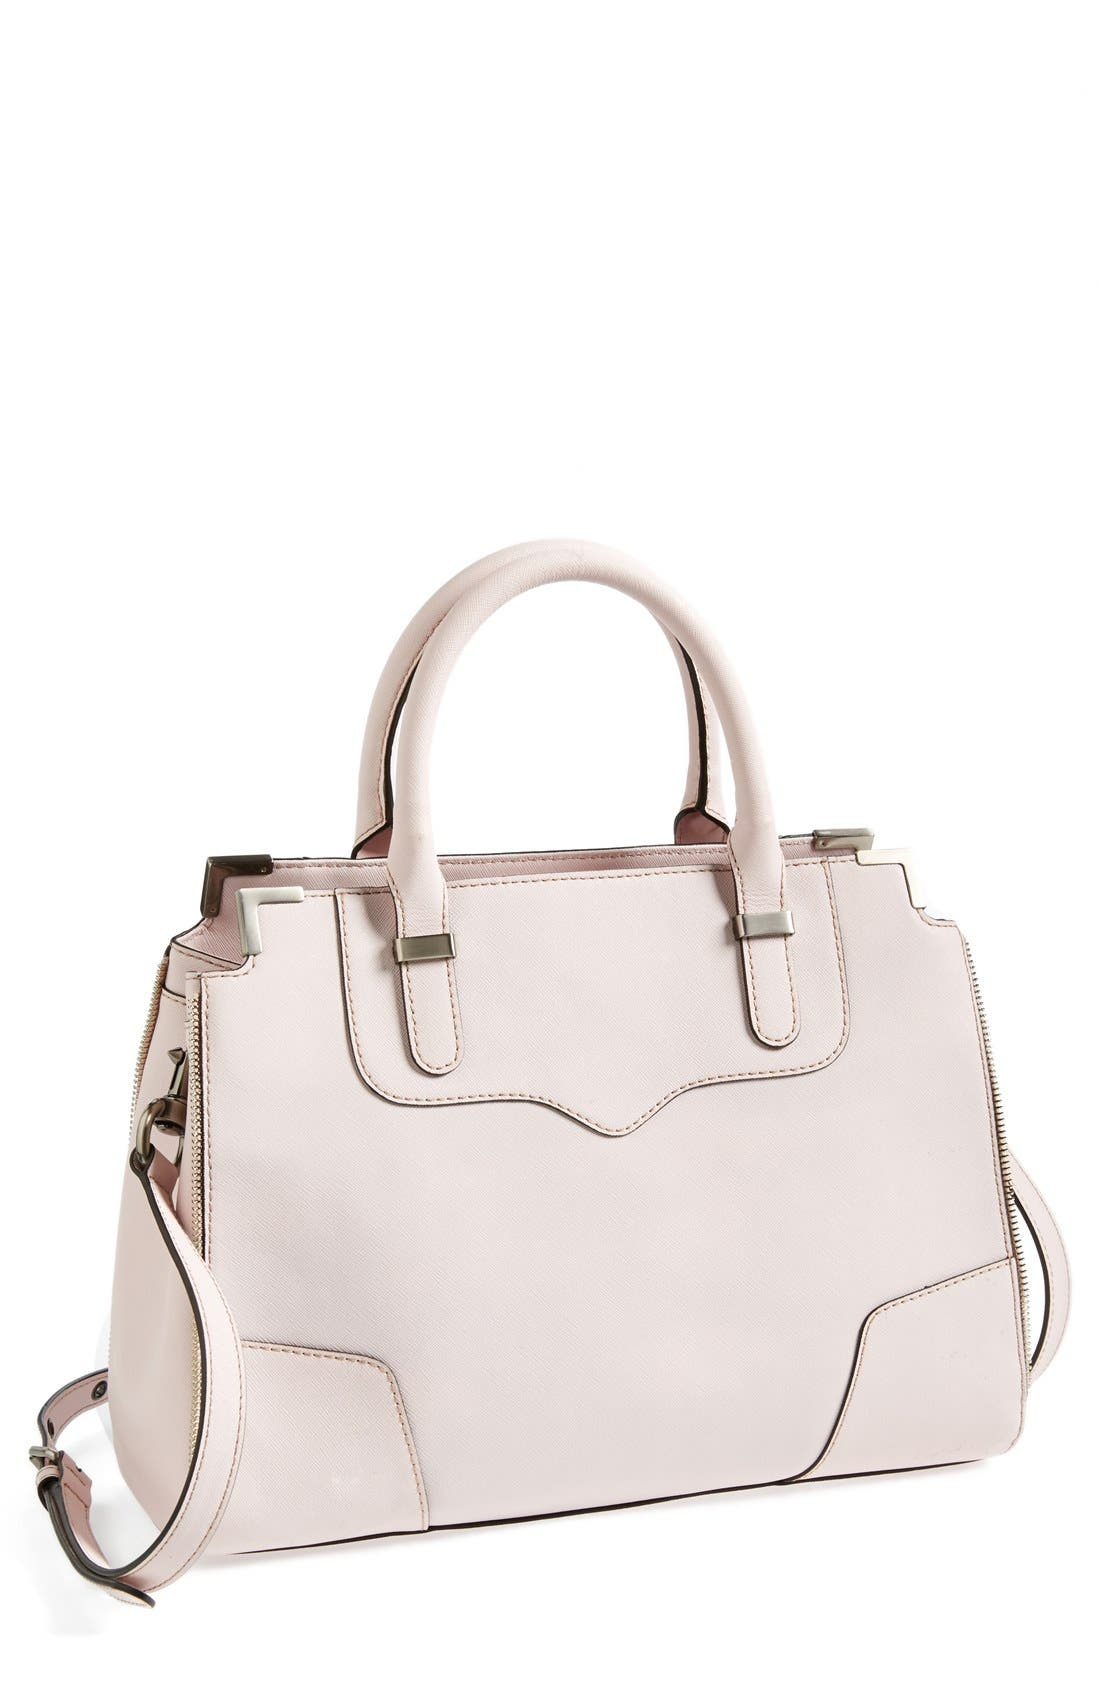 Main Image - Rebecca Minkoff 'Amourous' Leather Satchel